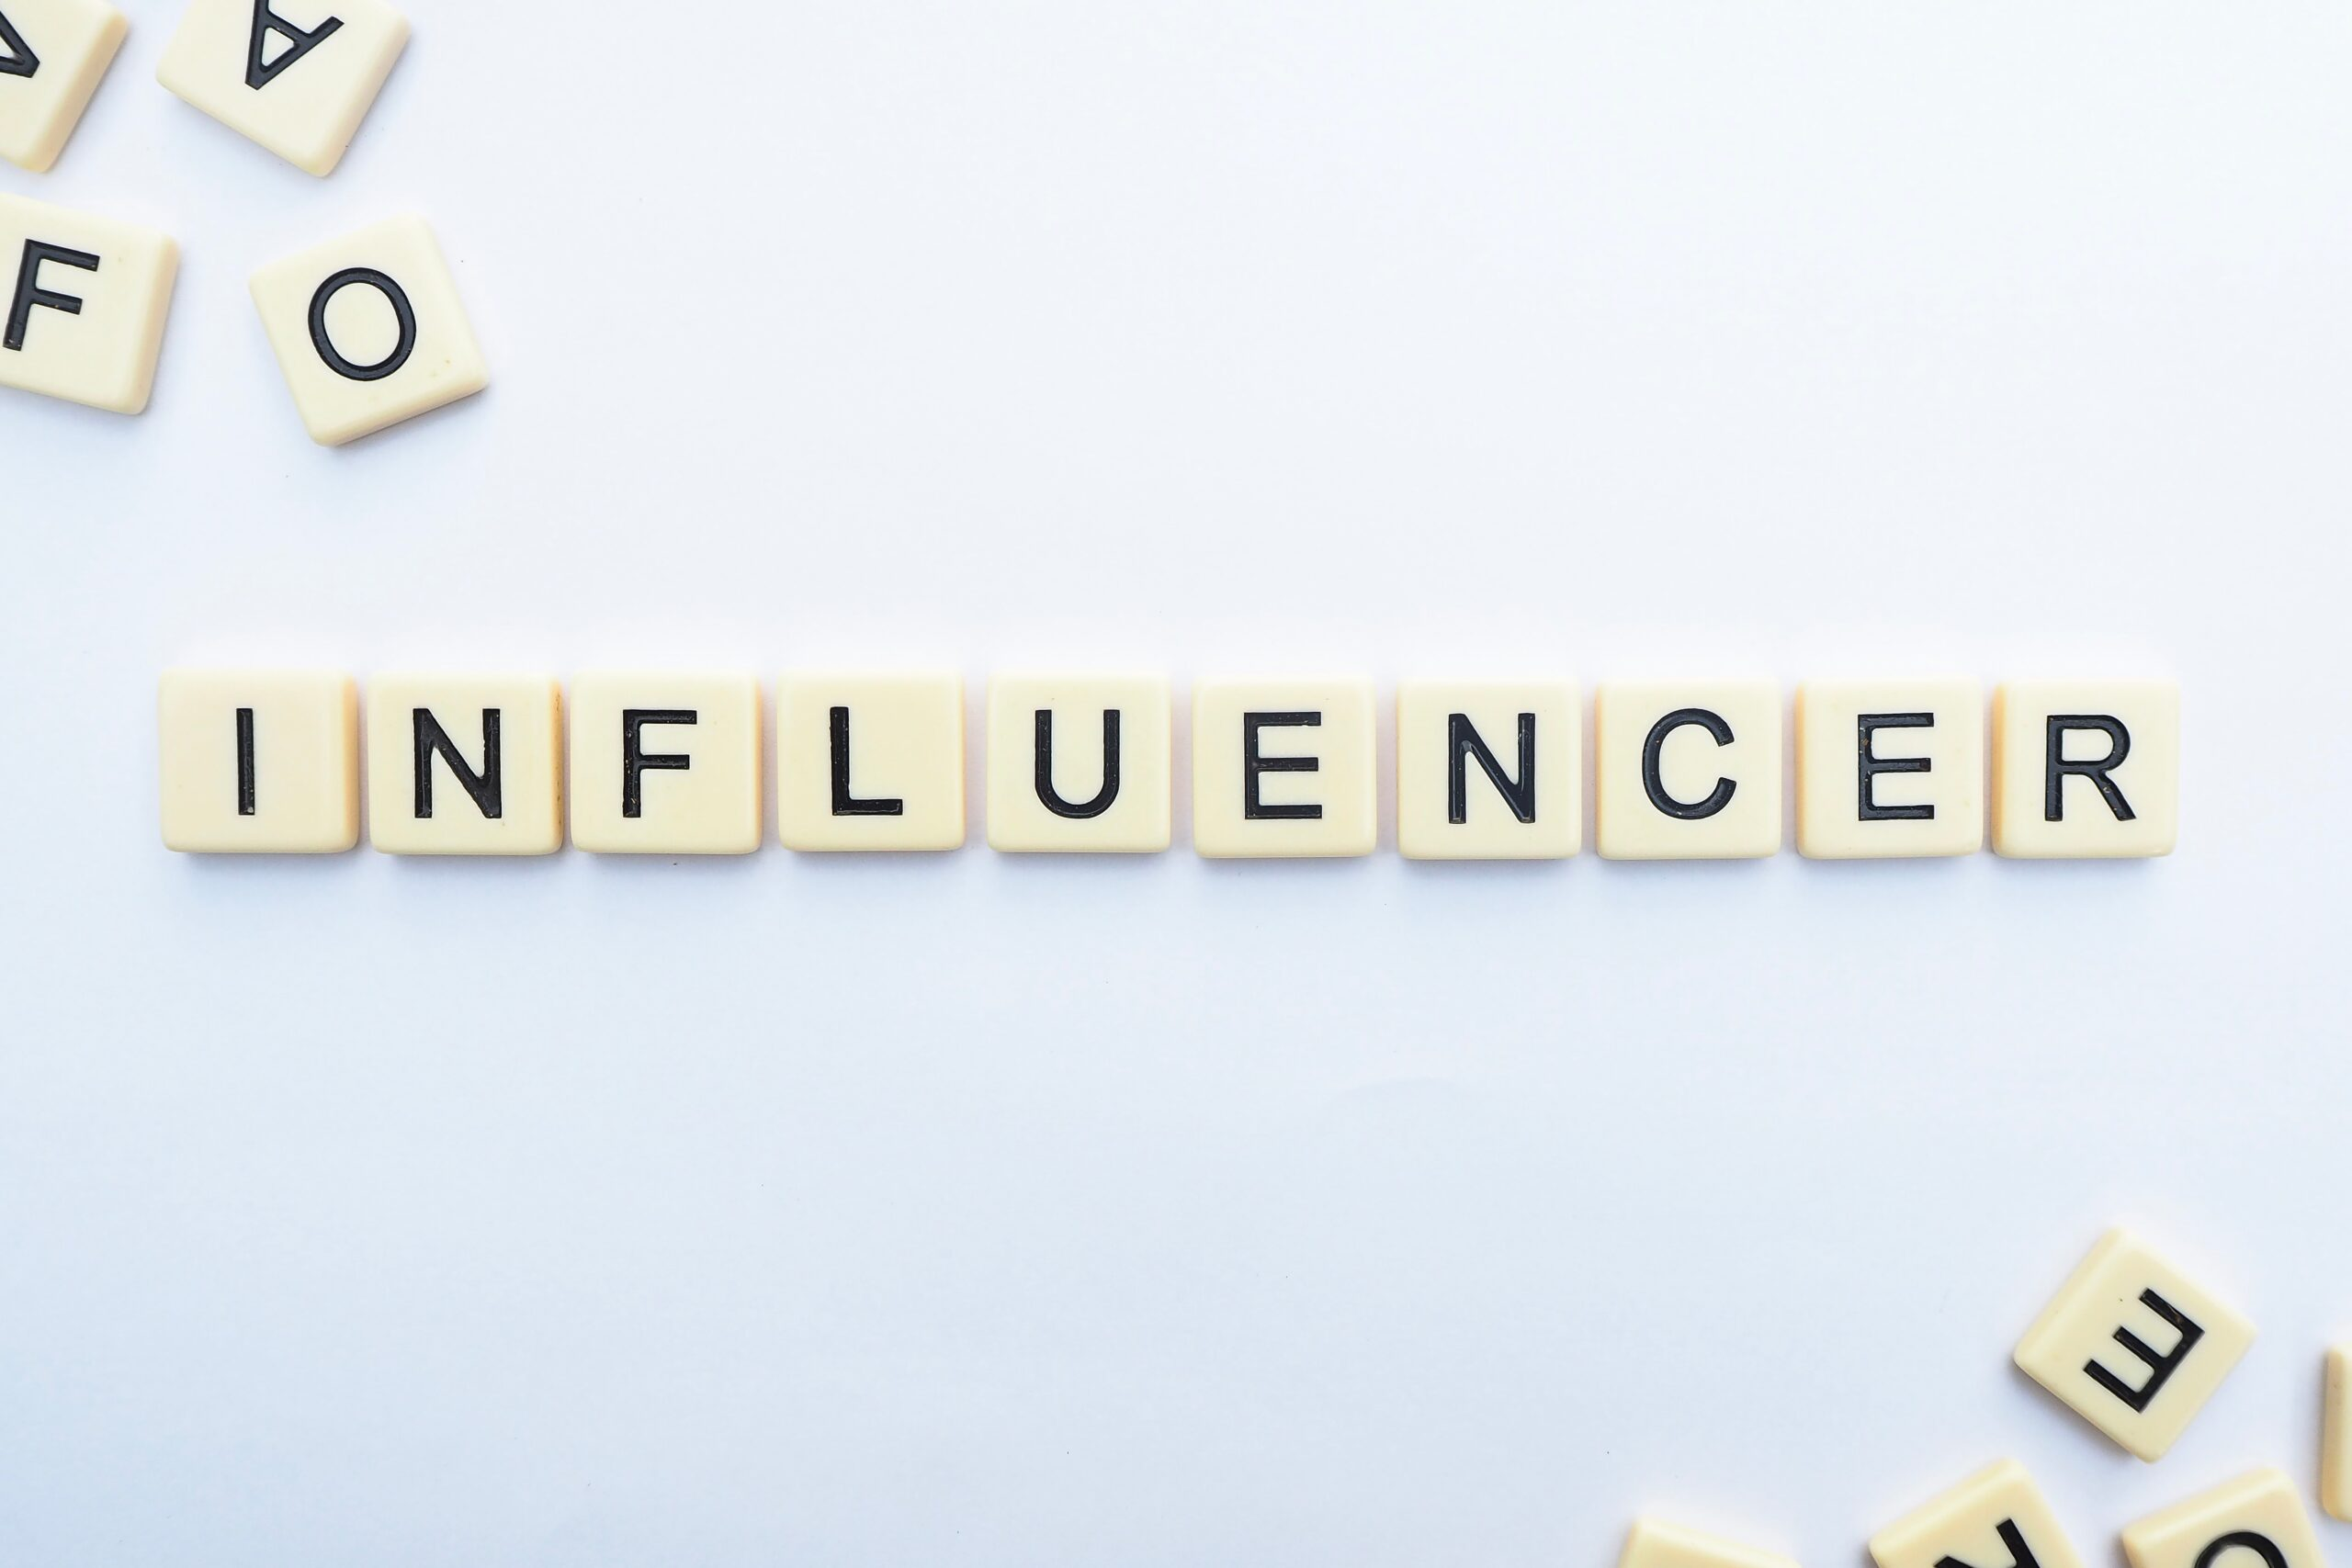 Should you have an influencer marketing strategy?